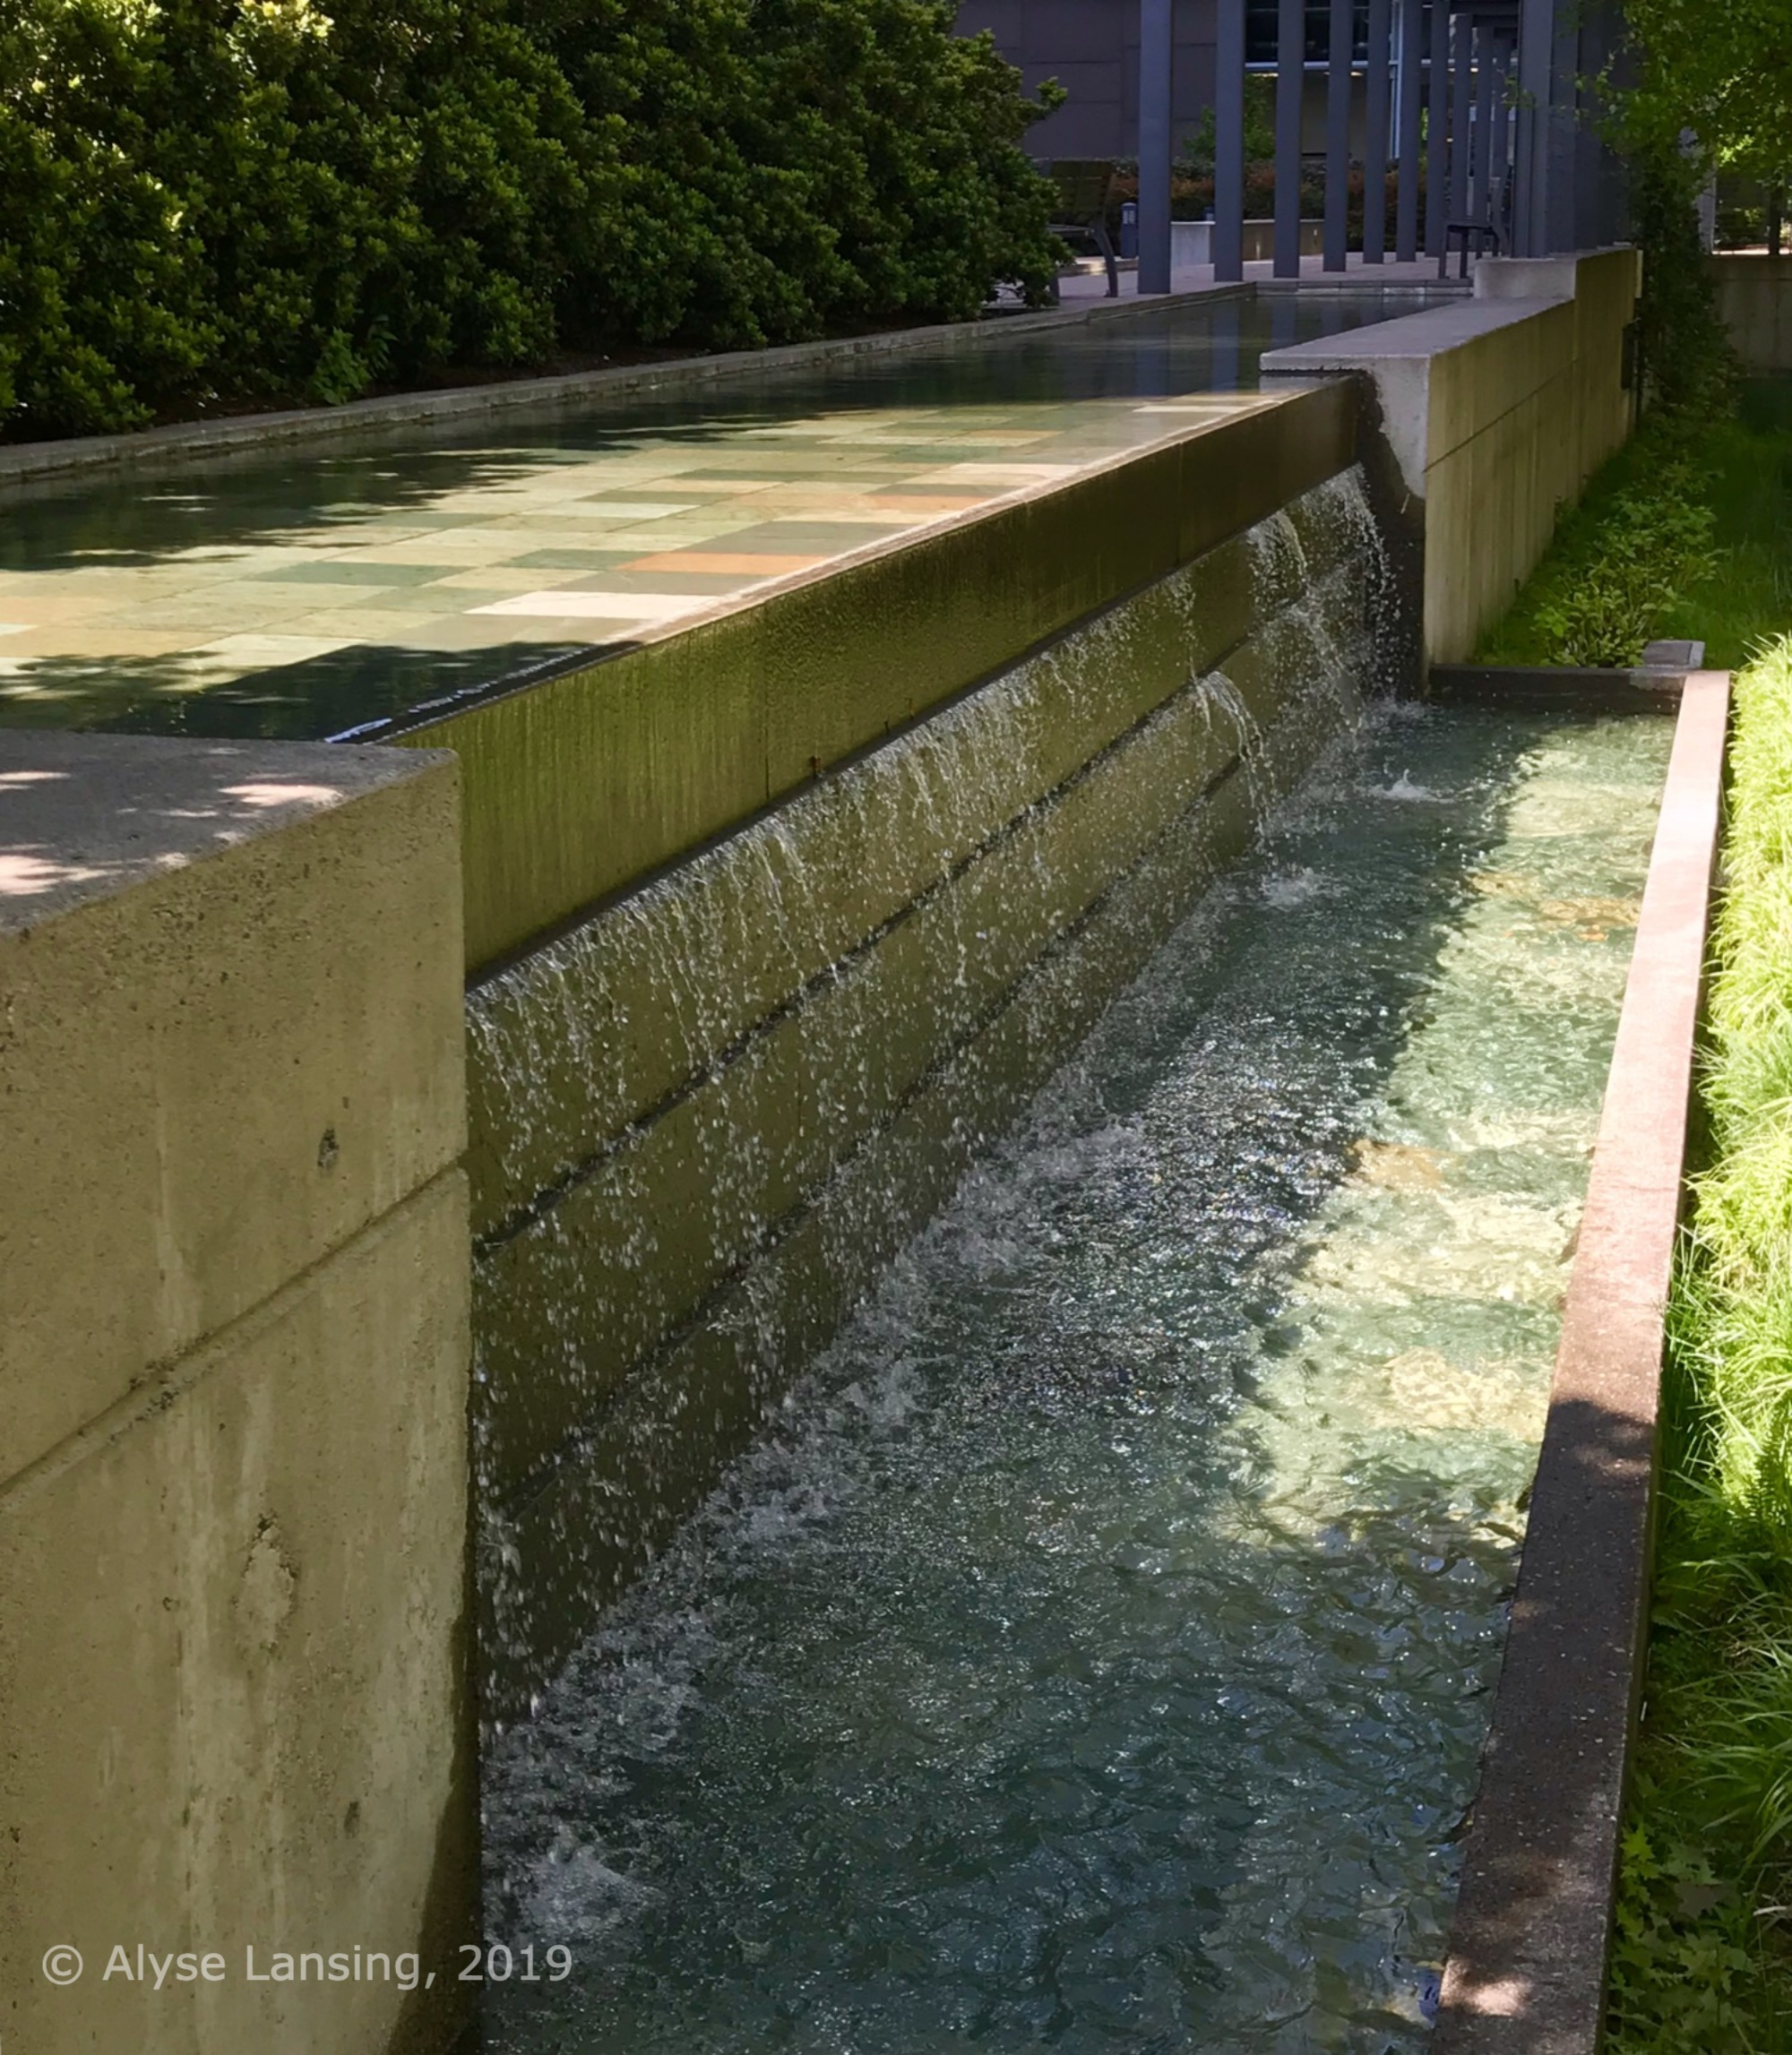 Handsome waterfalls outside the Atwater building, on the public walkway Pennoyer Street.